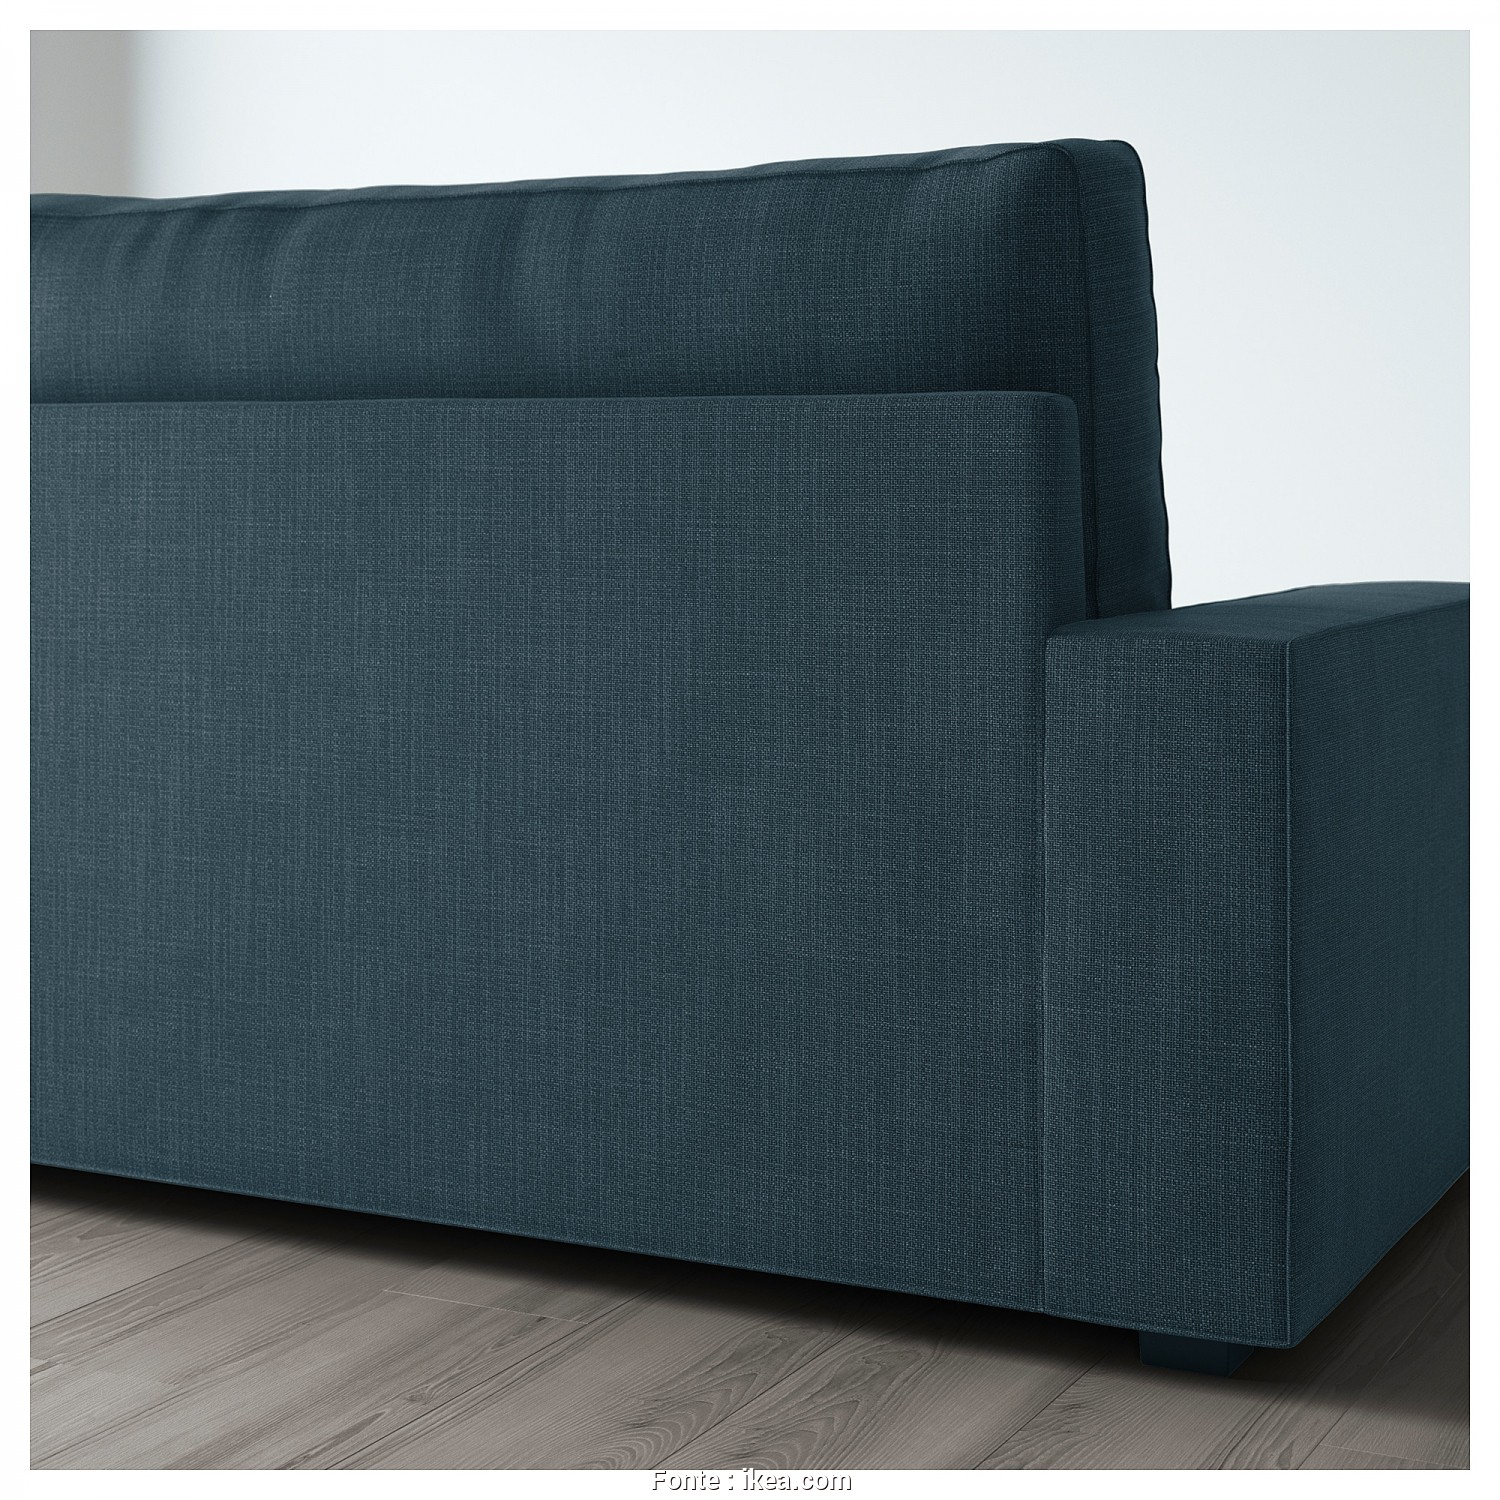 Vilasund Ikea Sofa Bed, Eccezionale VILASUND Two-Seat Sofa-Bed Hillared Dark Blue